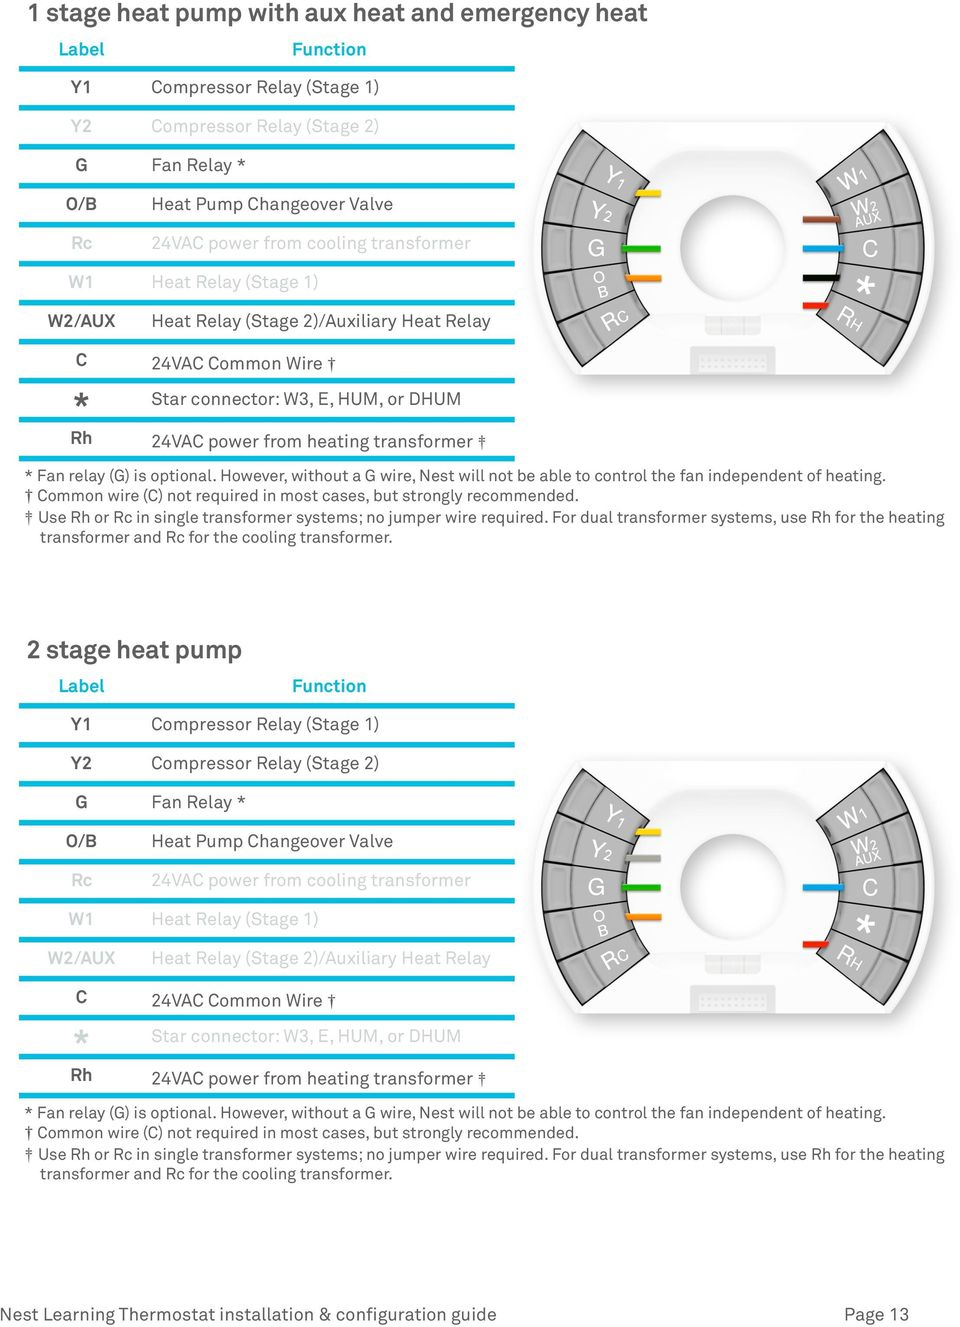 Nest Thermostat Wiring Diagram For Heat Pump | Wiring Diagram - 4 Wire Nest Thermostat Wiring Diagram